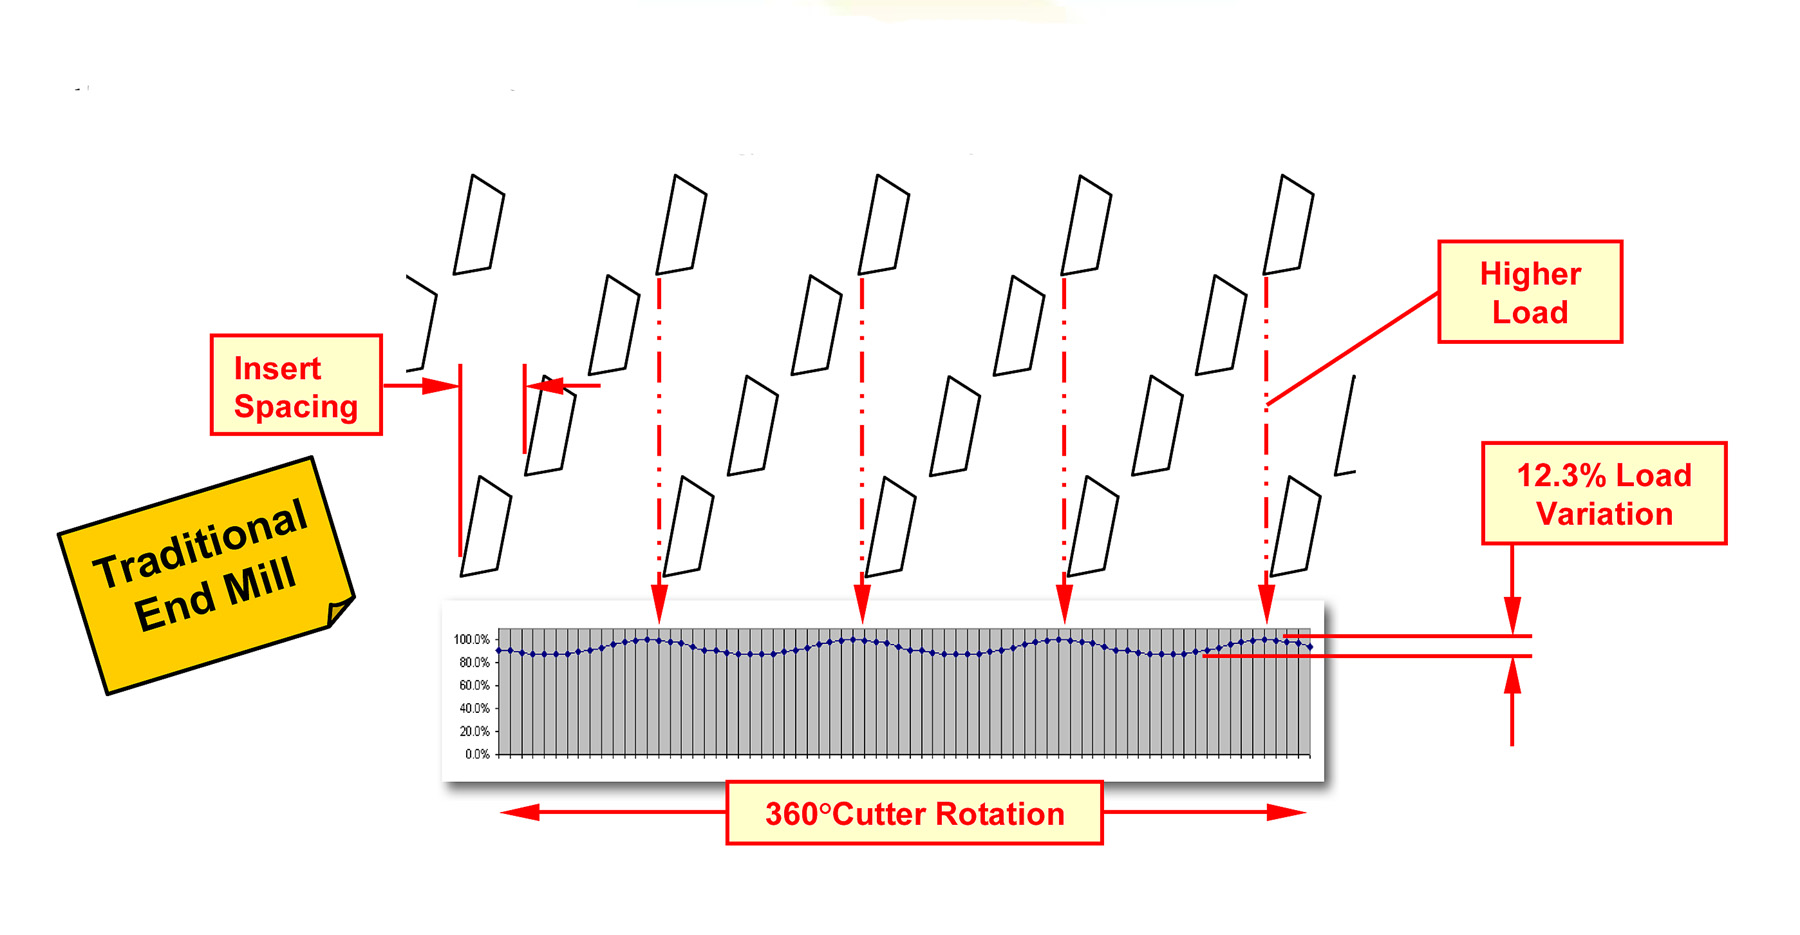 Figure 2. Traditionally, more edges in the cut due to even insert spacing can be expected to accelerate cutting. However, this actually increases load requirements and cutting load variation, as the waveform chart shows.